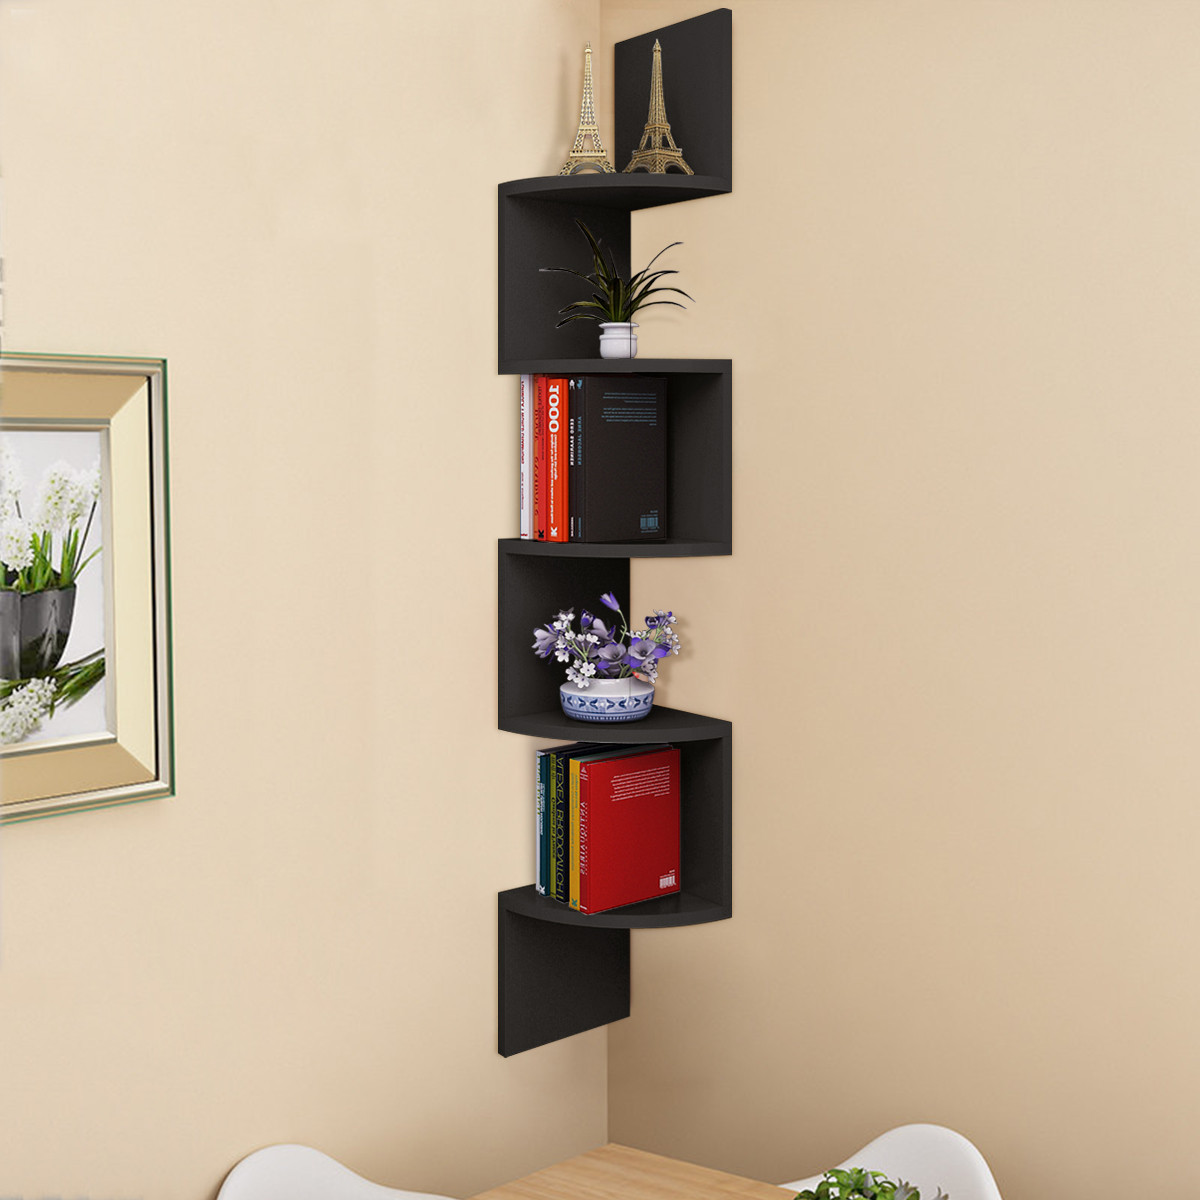 tier wall mount corner shelf floating shelves storage display mounted books home decor bracket modern kitchen dresser with secret compartment unfinished shelving boards component